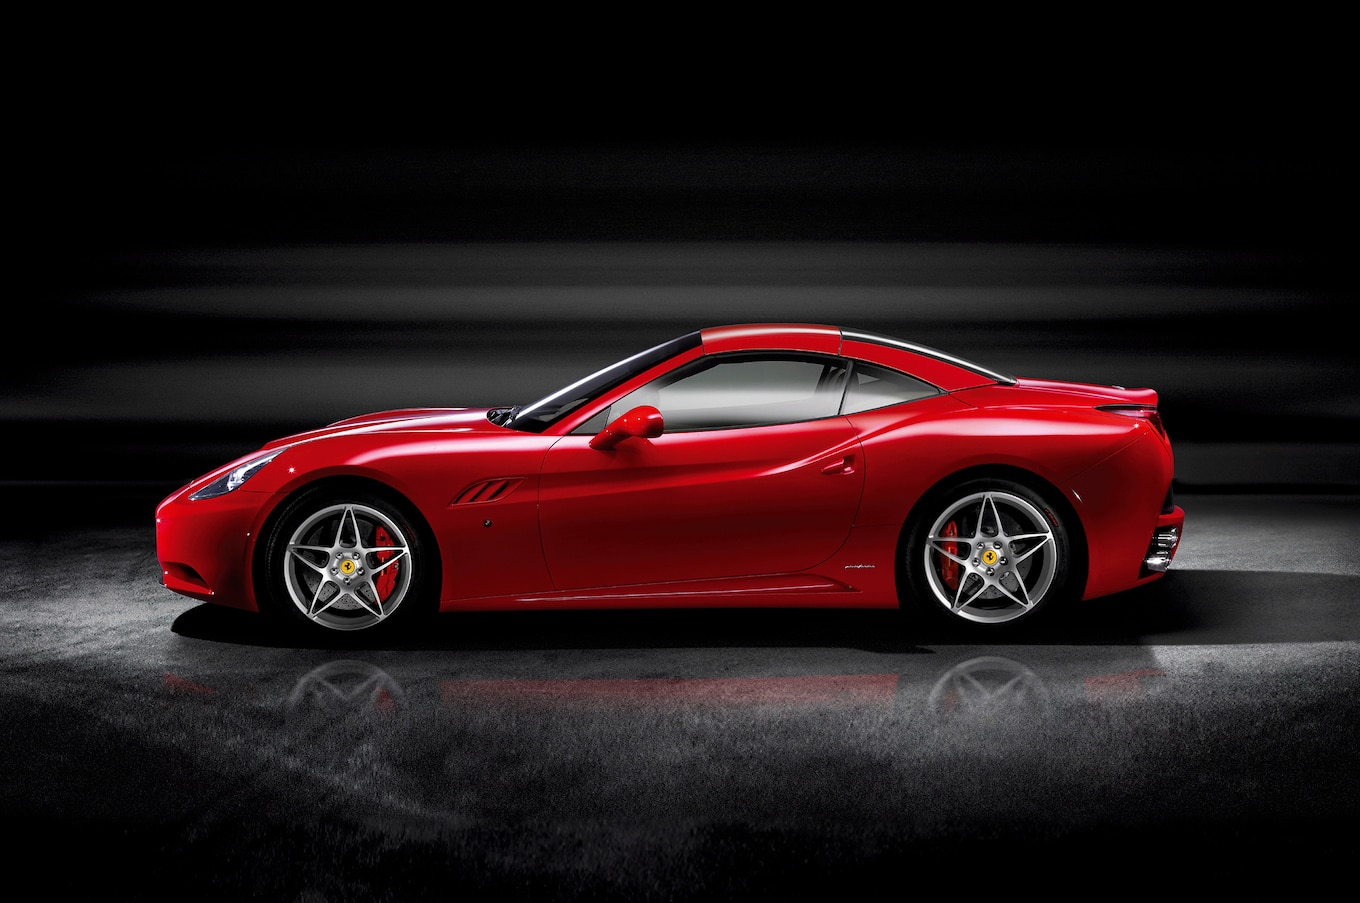 2014 Ferrari California Reviews and Rating | Motor Trend